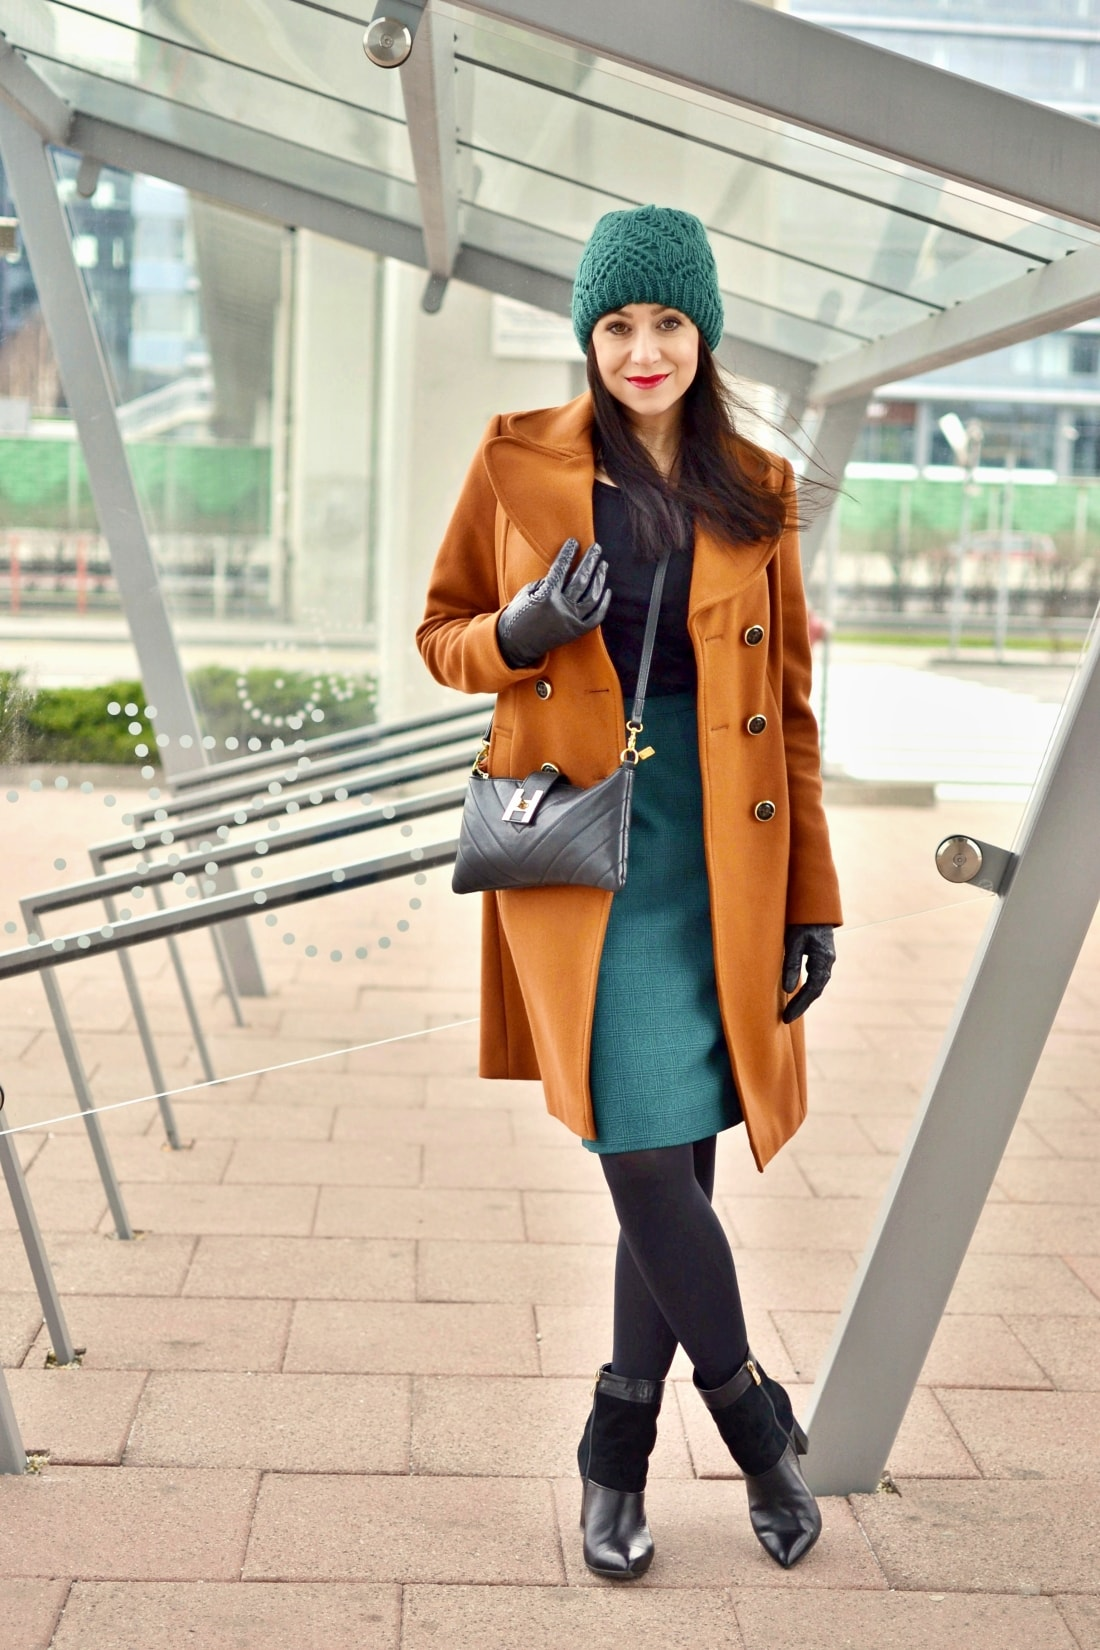 katharine-fashion-is-beautiful-blog-sukna-outfit-6